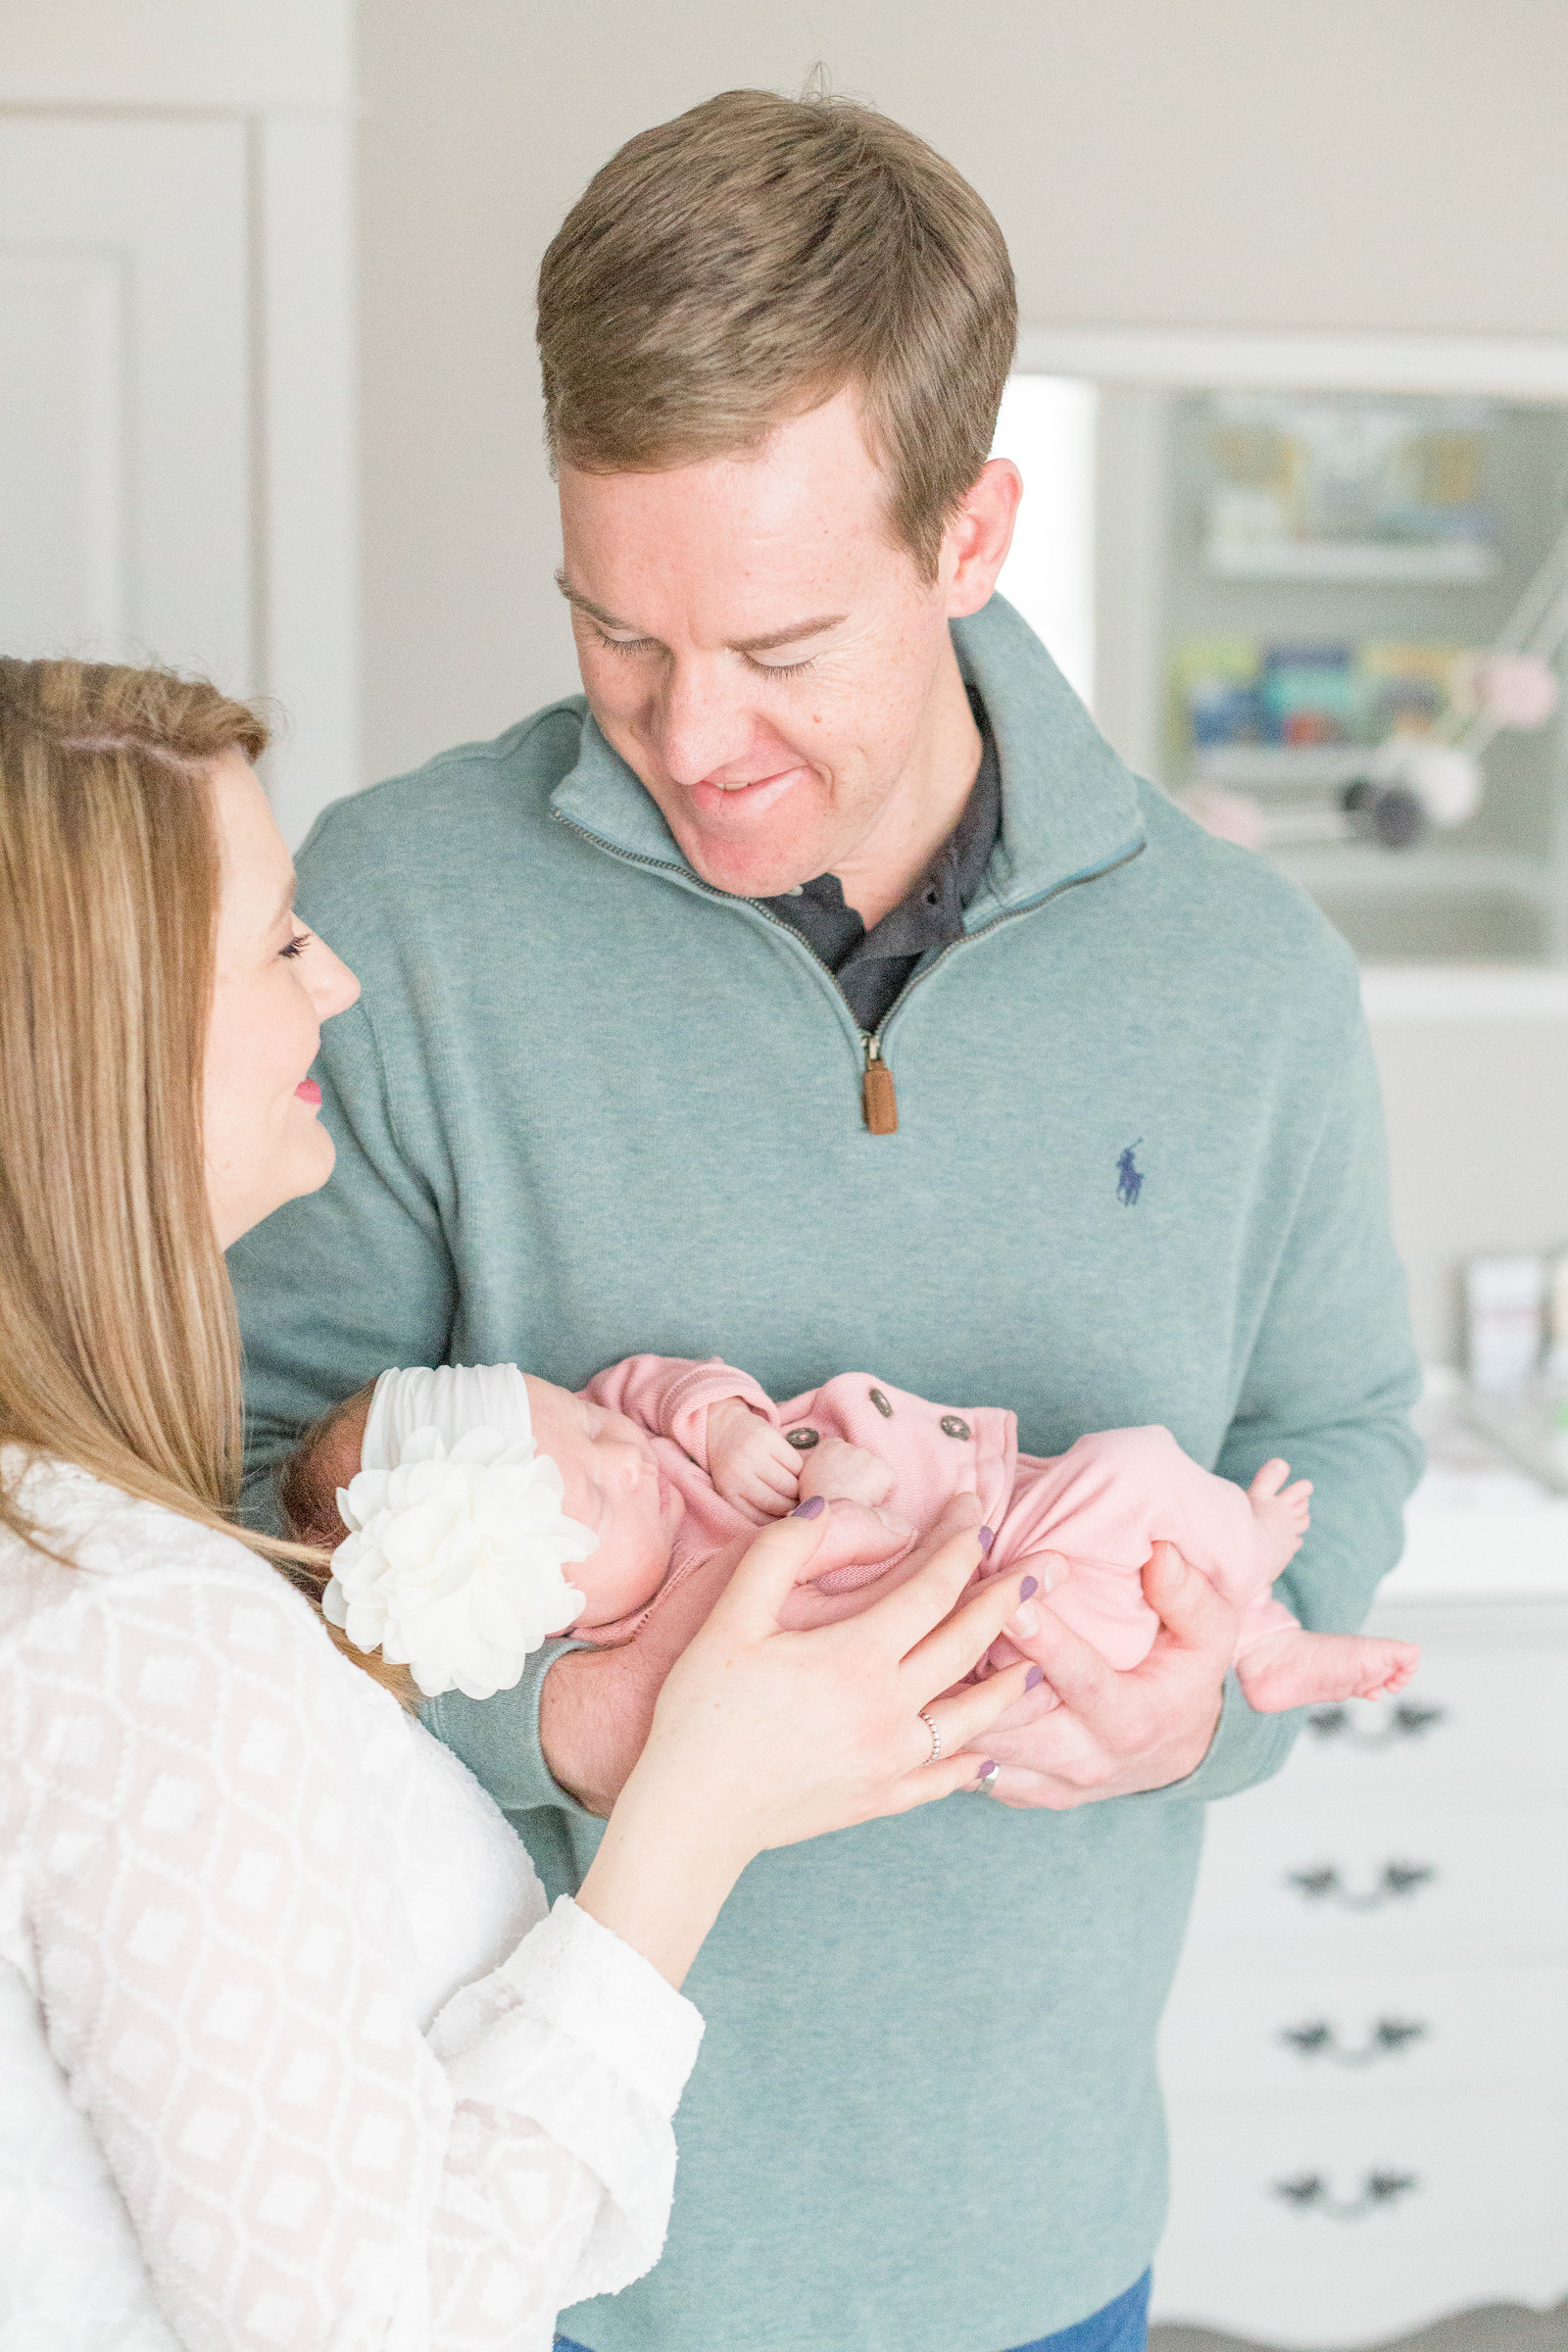 martin-family-lifestyle-in-home-newborn-baby-photo-session-004